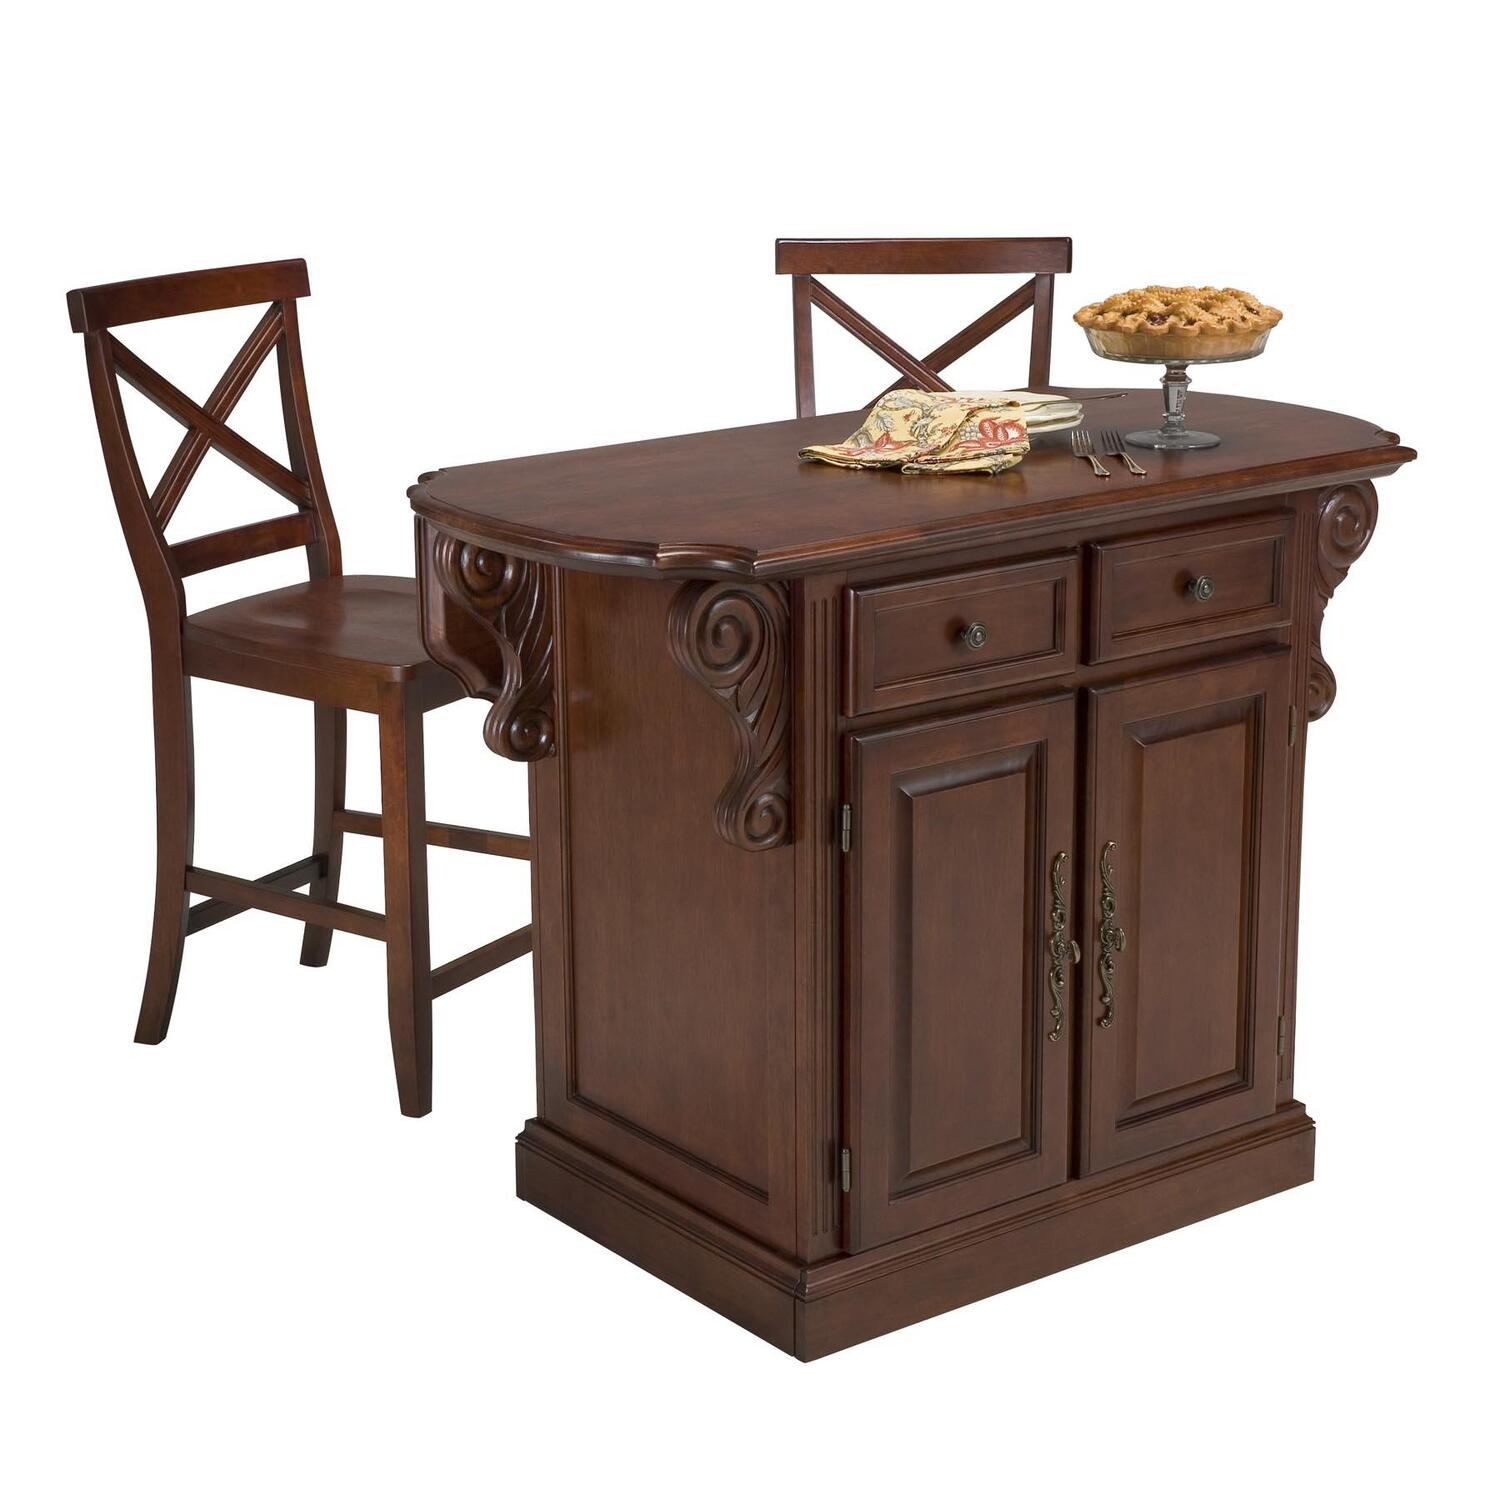 Home Styles Traditions Kitchen Island And Two Bar Stools By Oj Commerce 1 1